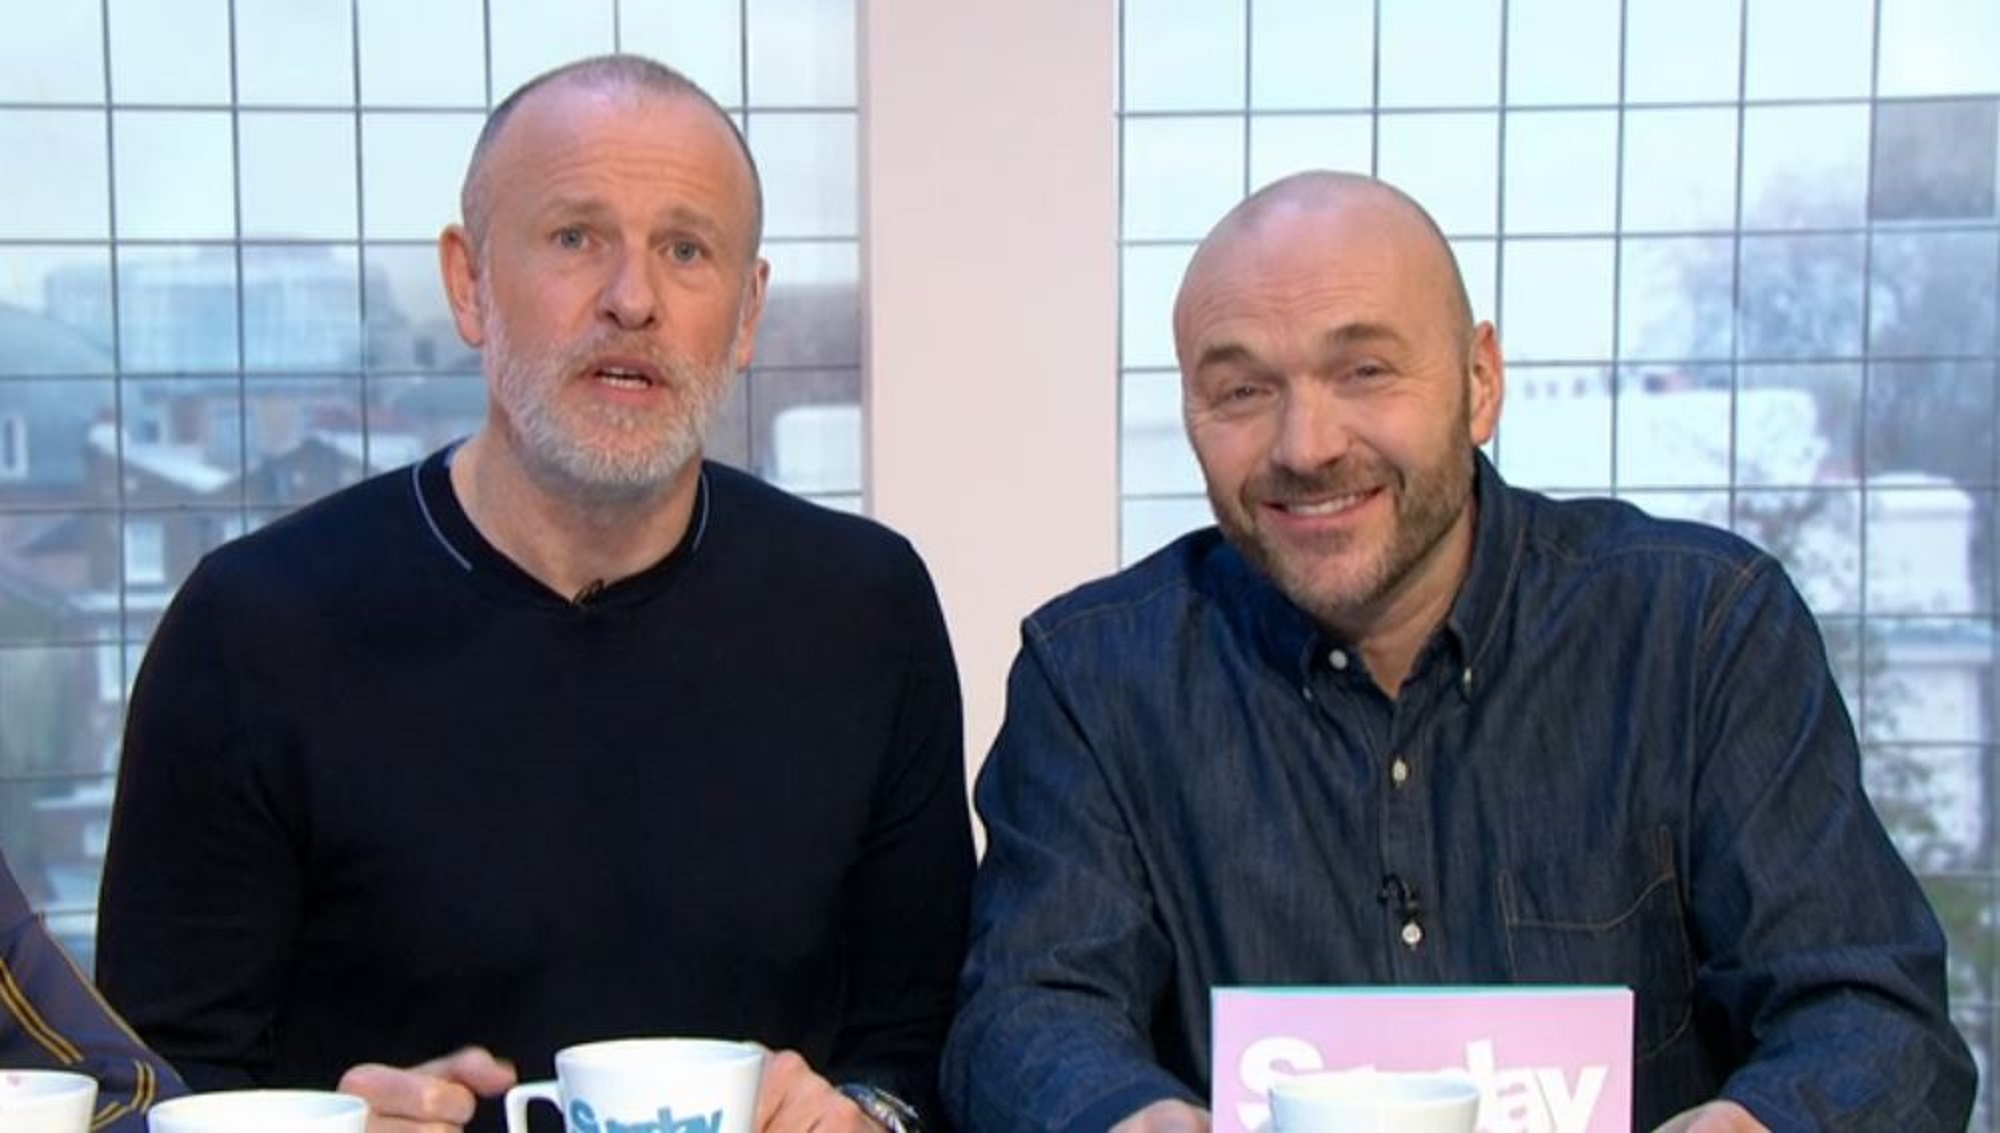 When will Sunday Brunch be back? Coronavirus forces Tim Lovejoy and Simon Rimmer off Channel 4